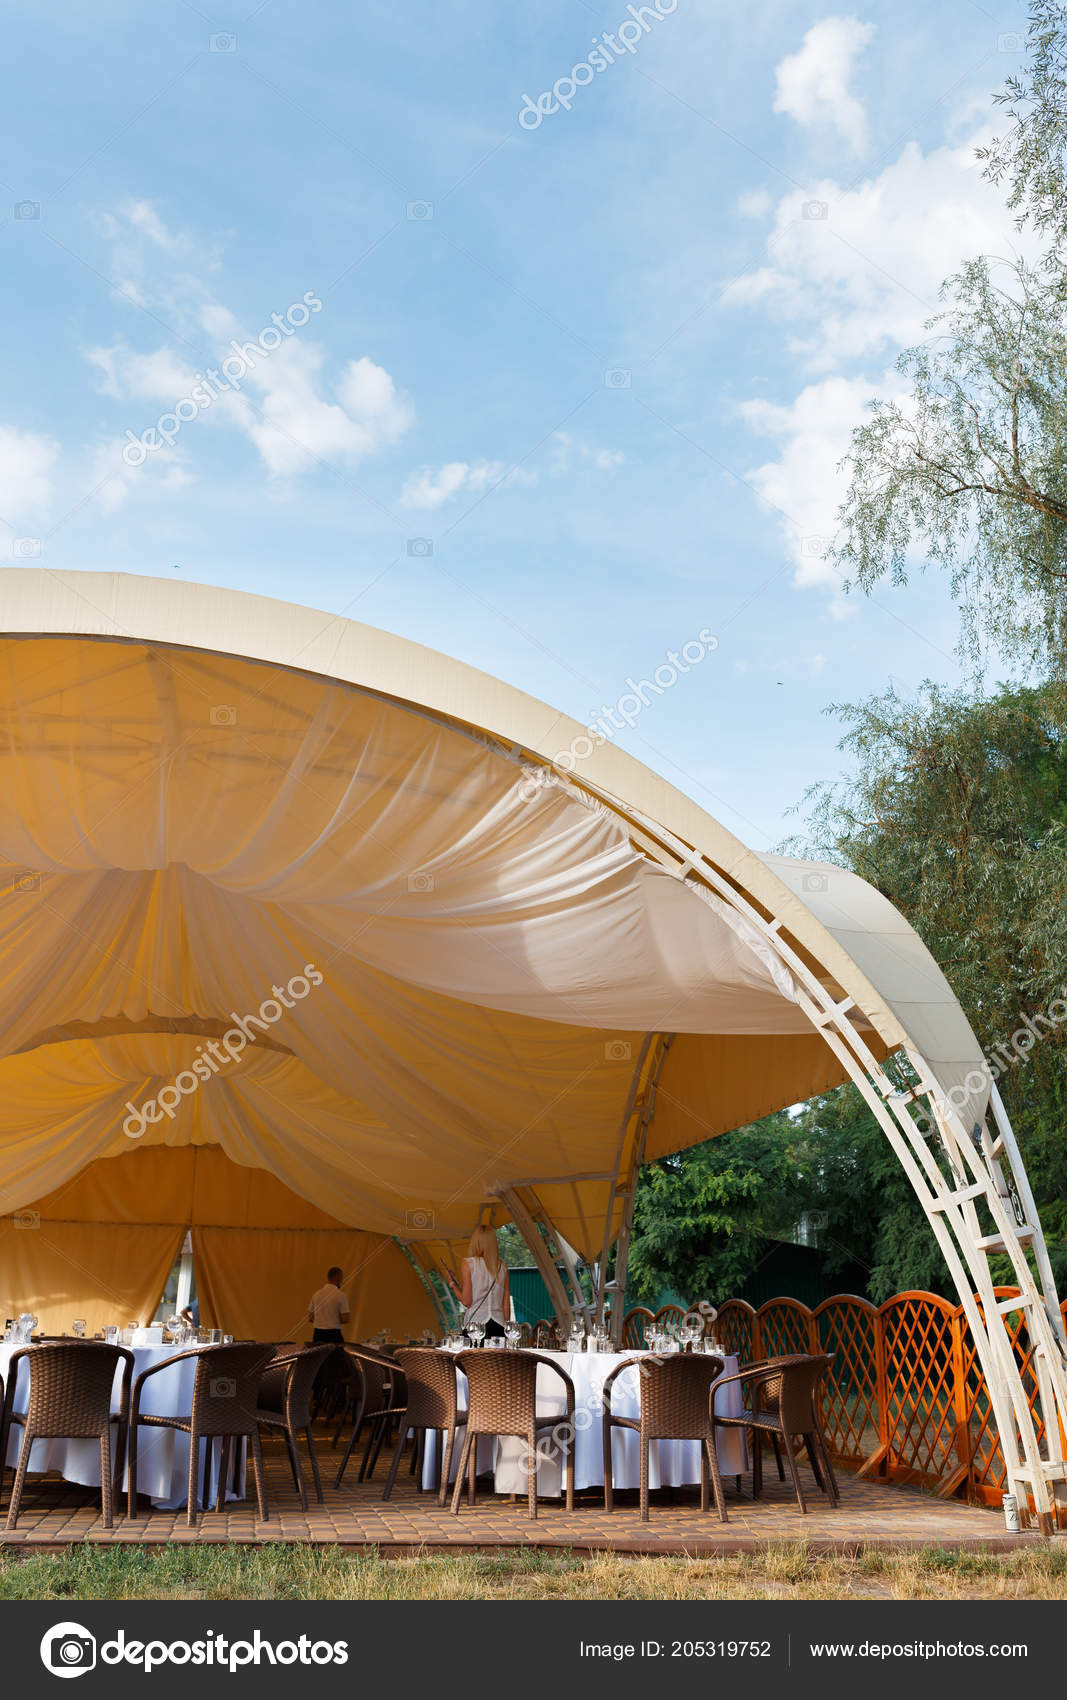 Outdoor Wedding Reception In Tent Stock Photo Y